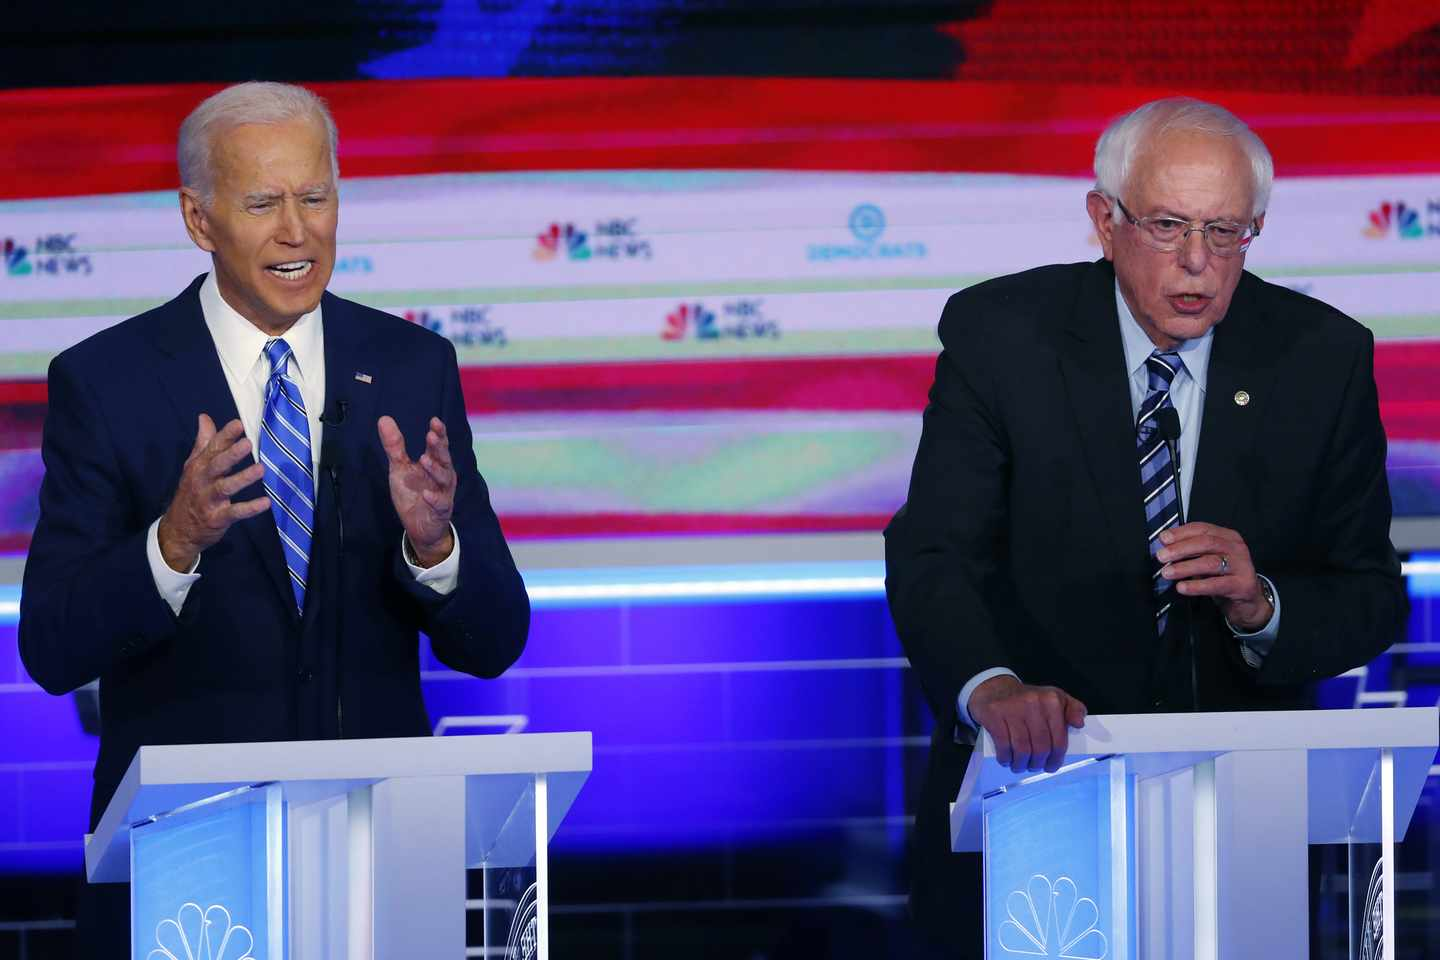 Ranking the 2020 Democratic Candidates by Media Coverage